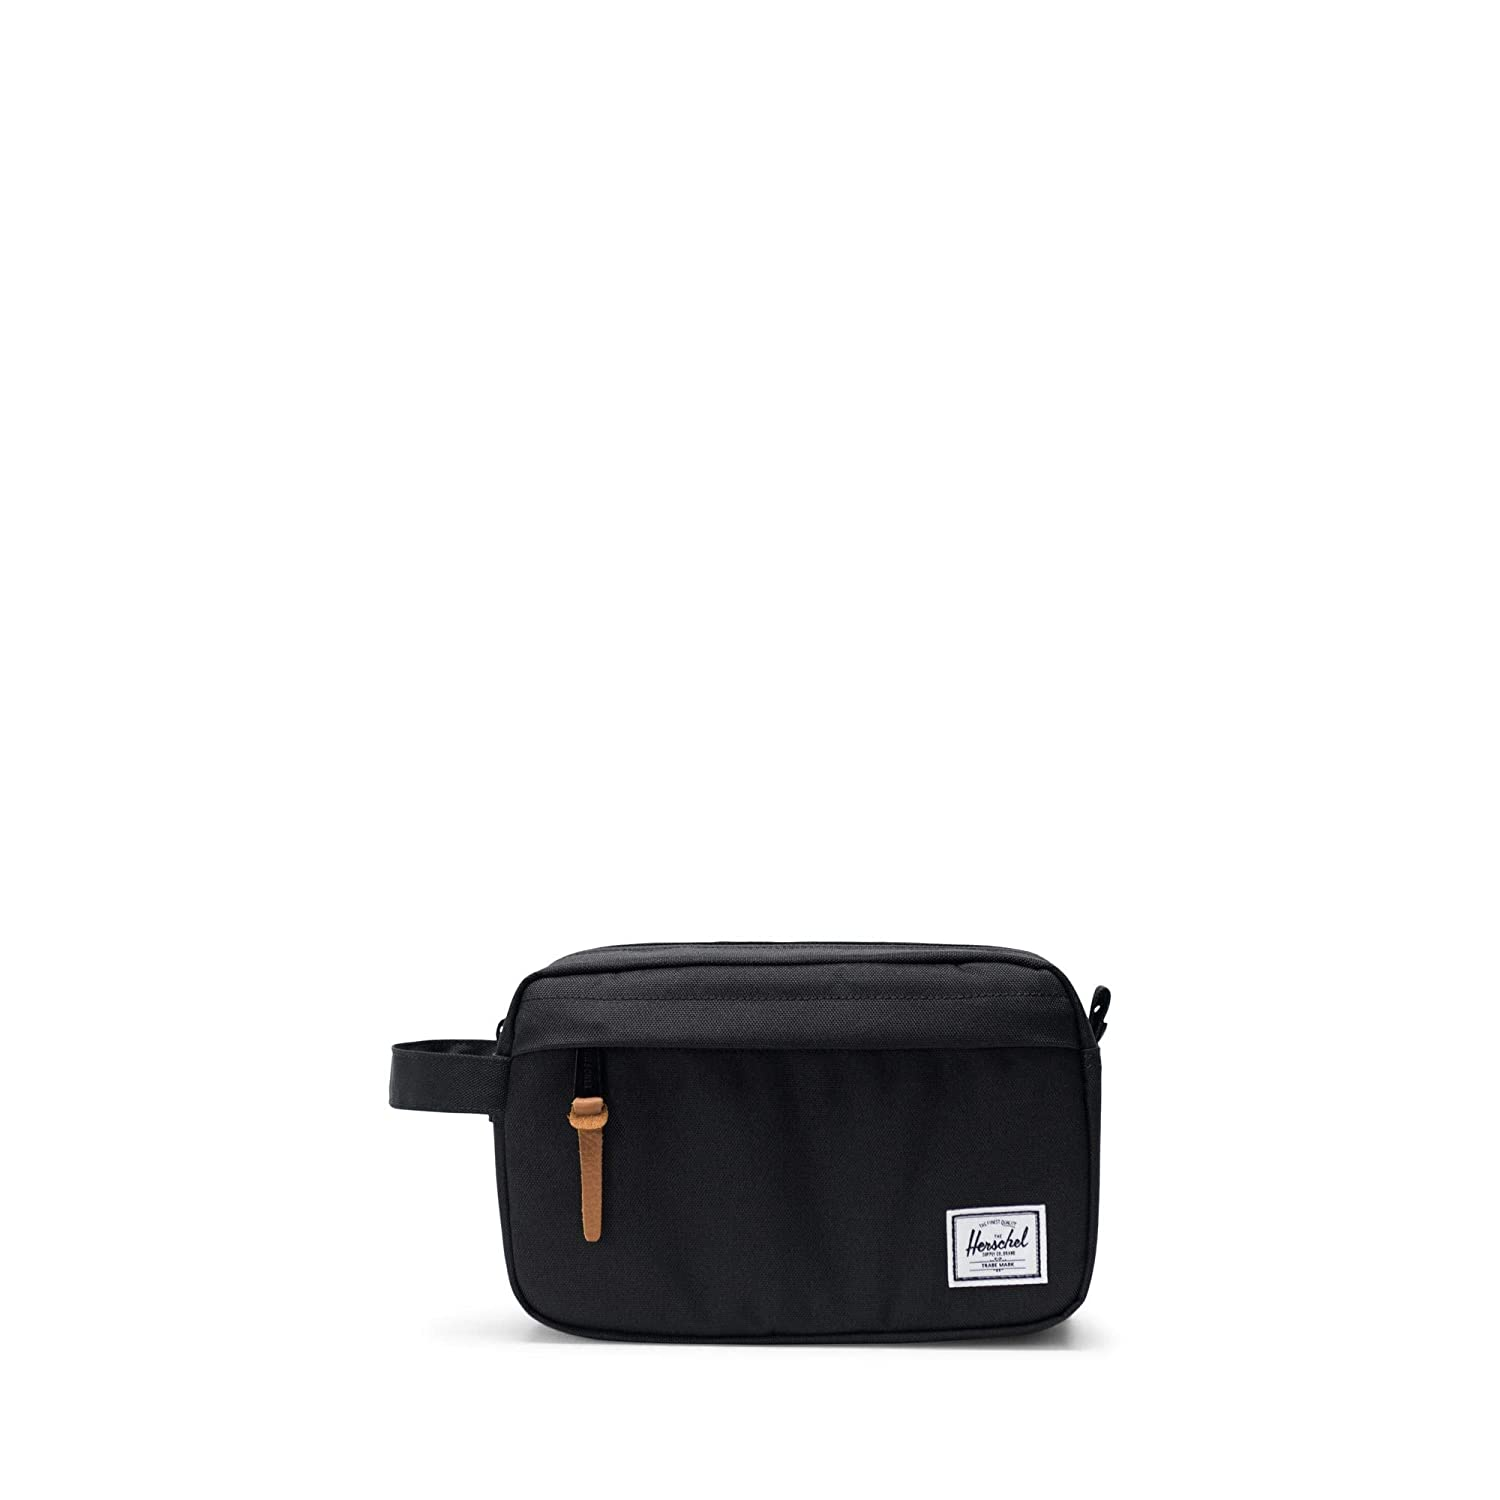 31d2ec290d Herschel Men s Chapter Travel Kit Bag-Black